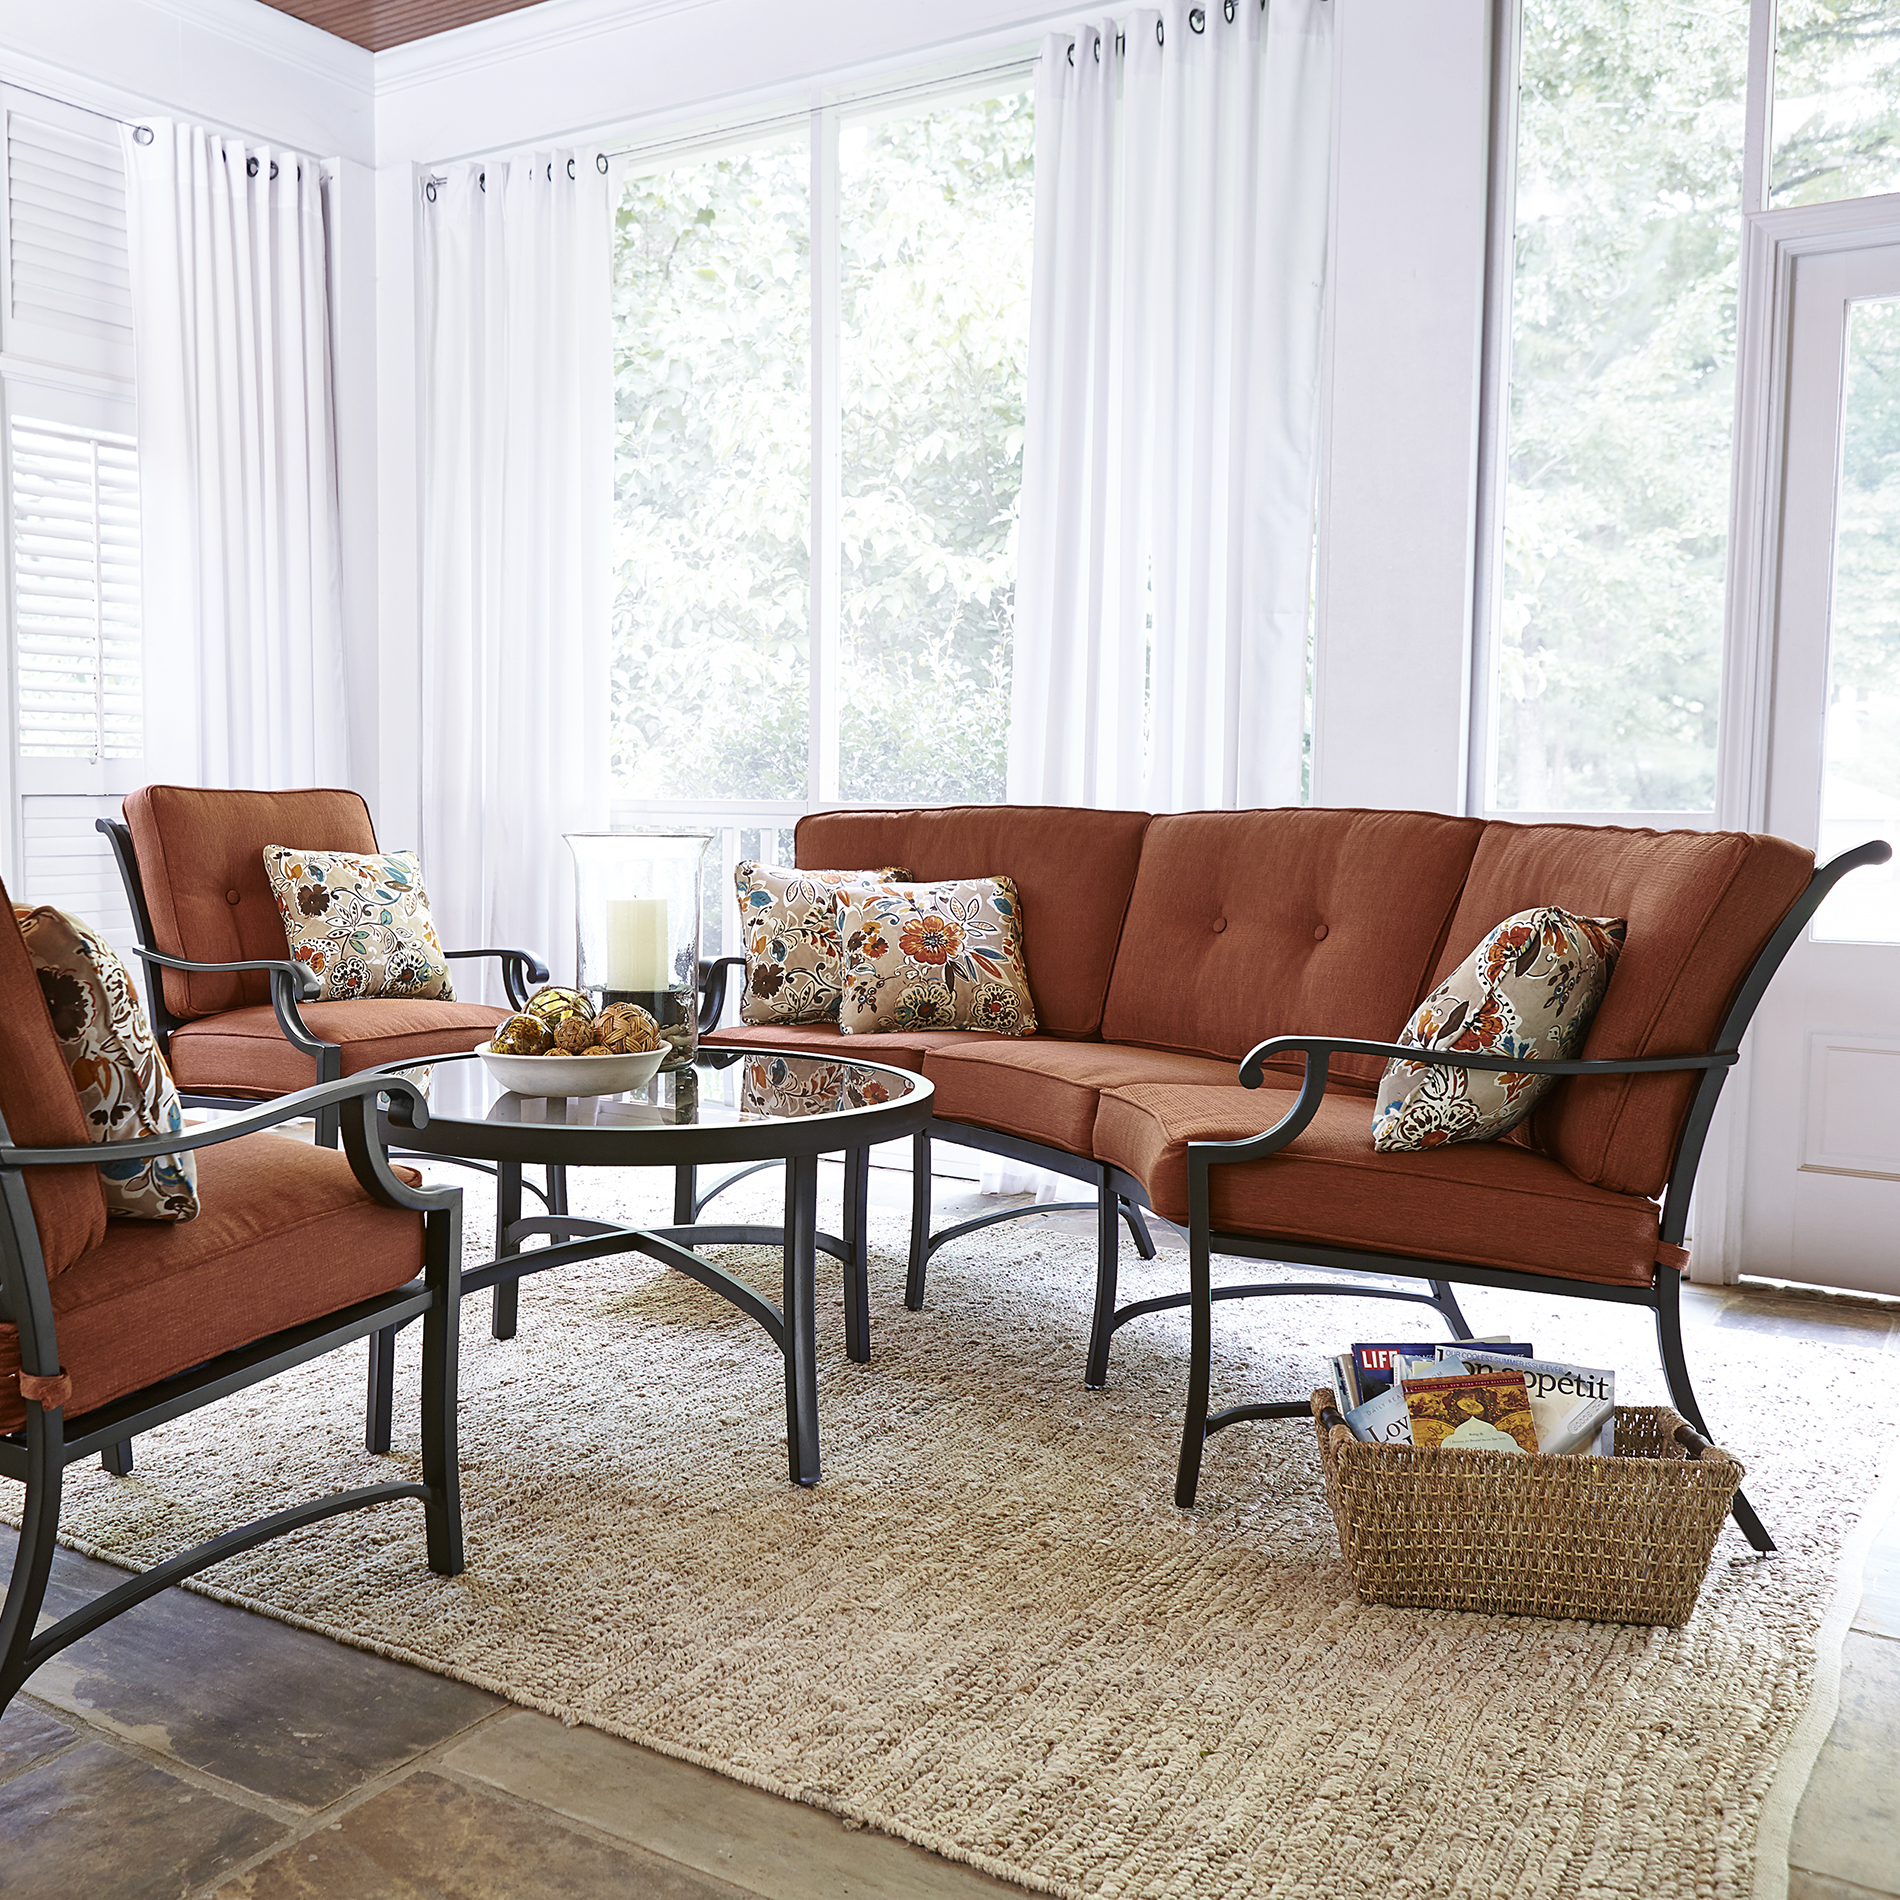 Grand Resort Florence 4 Piece Seating Set- Rust